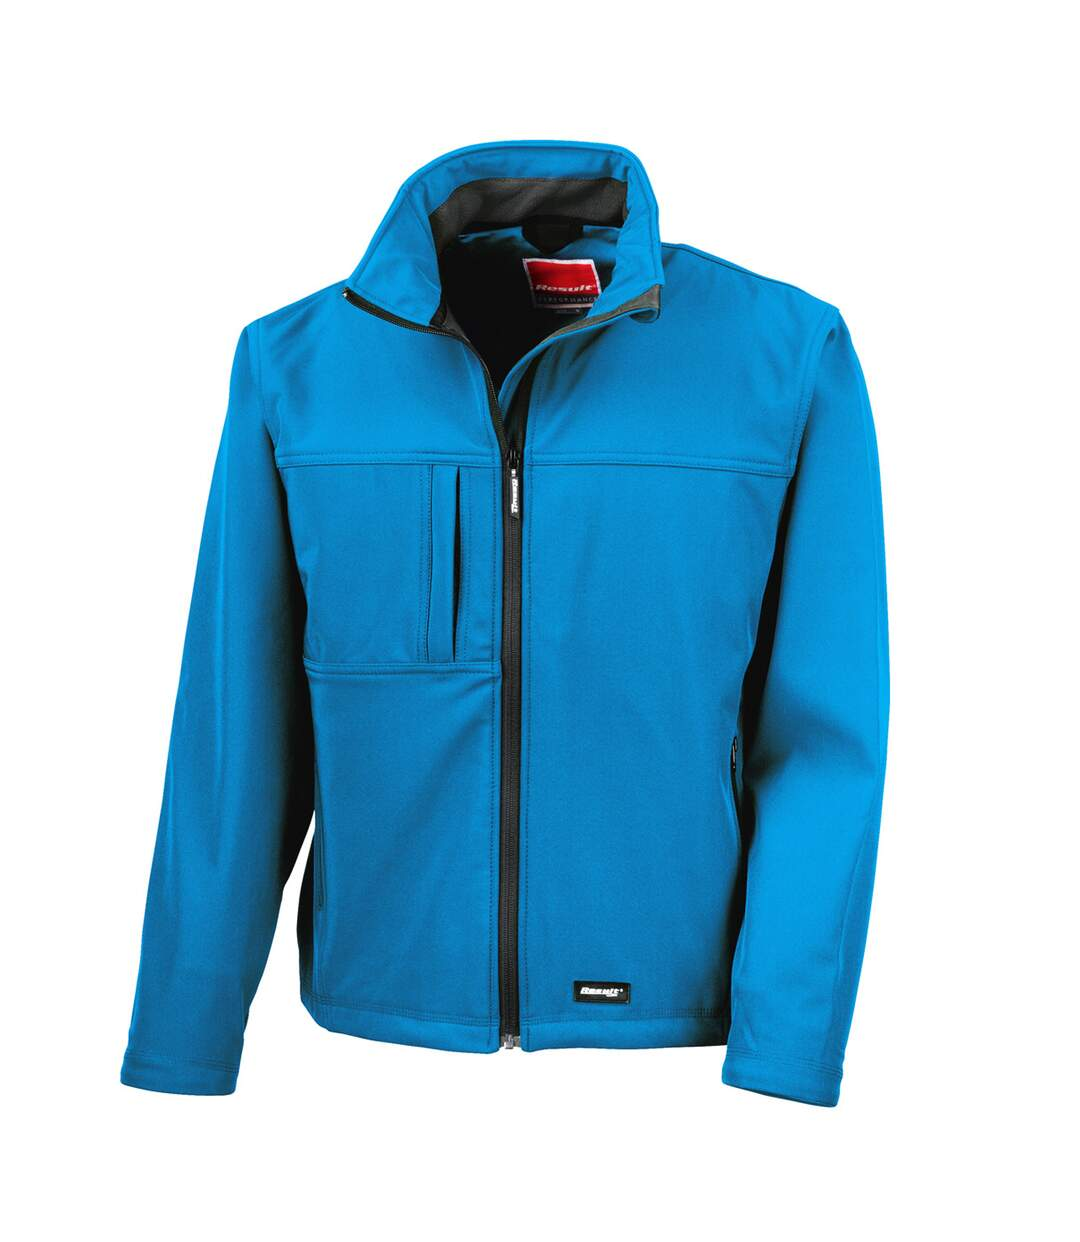 Result Mens Softshell Premium 3 Layer Performance Jacket (Waterproof, Windproof & Breathable) (Azure Blue) - UTBC2046